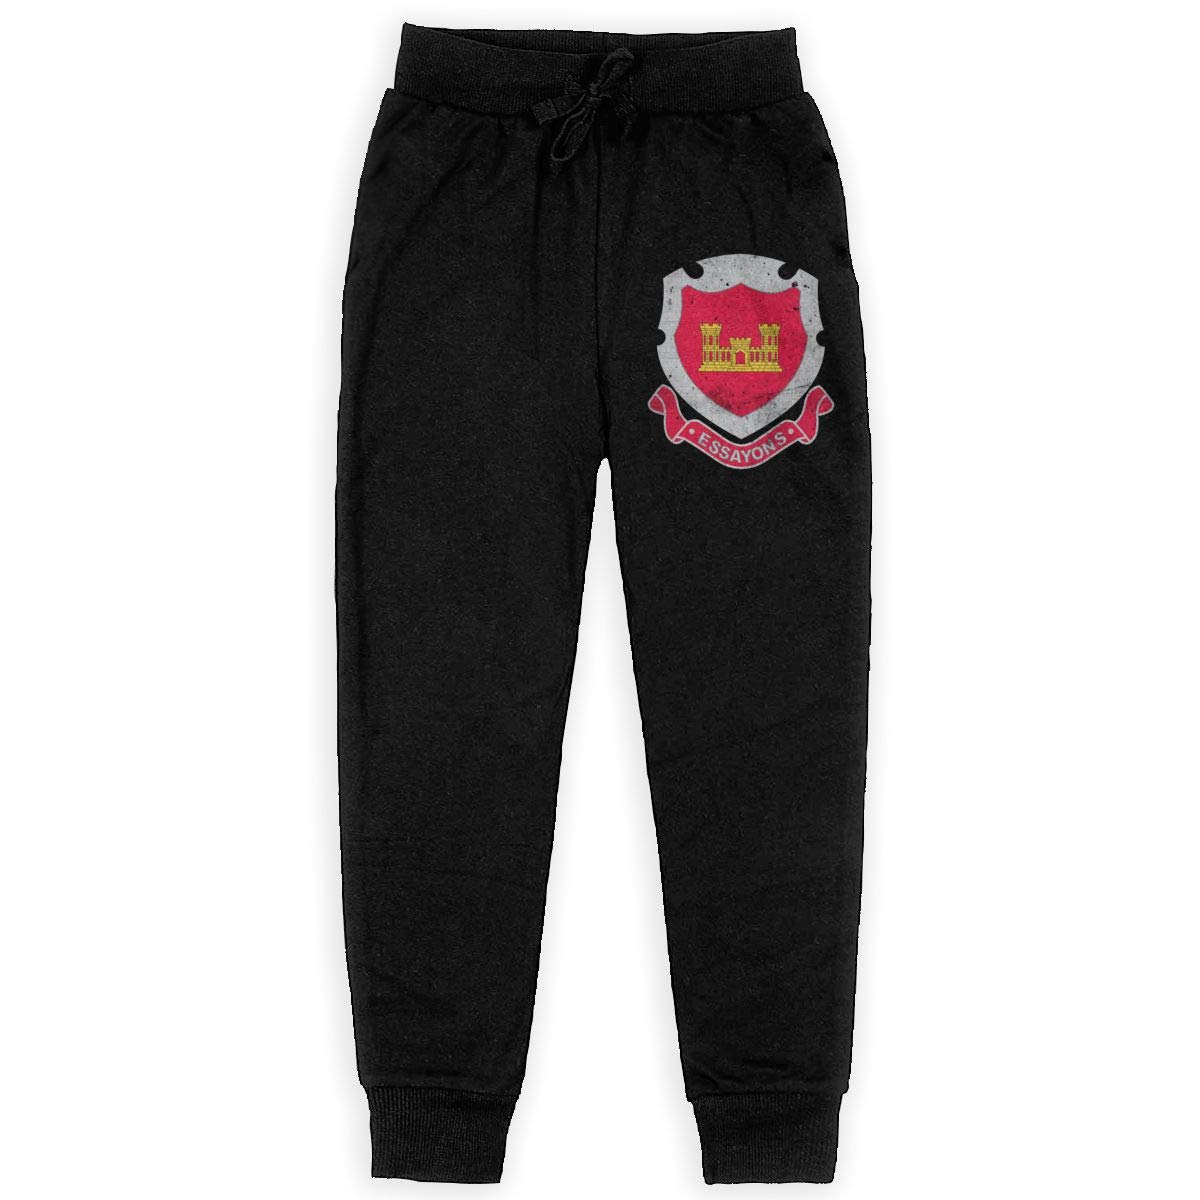 Qinf Boys Sweatpants US Army Retro Engineers Corps Joggers Sport Training Pants Trousers Black